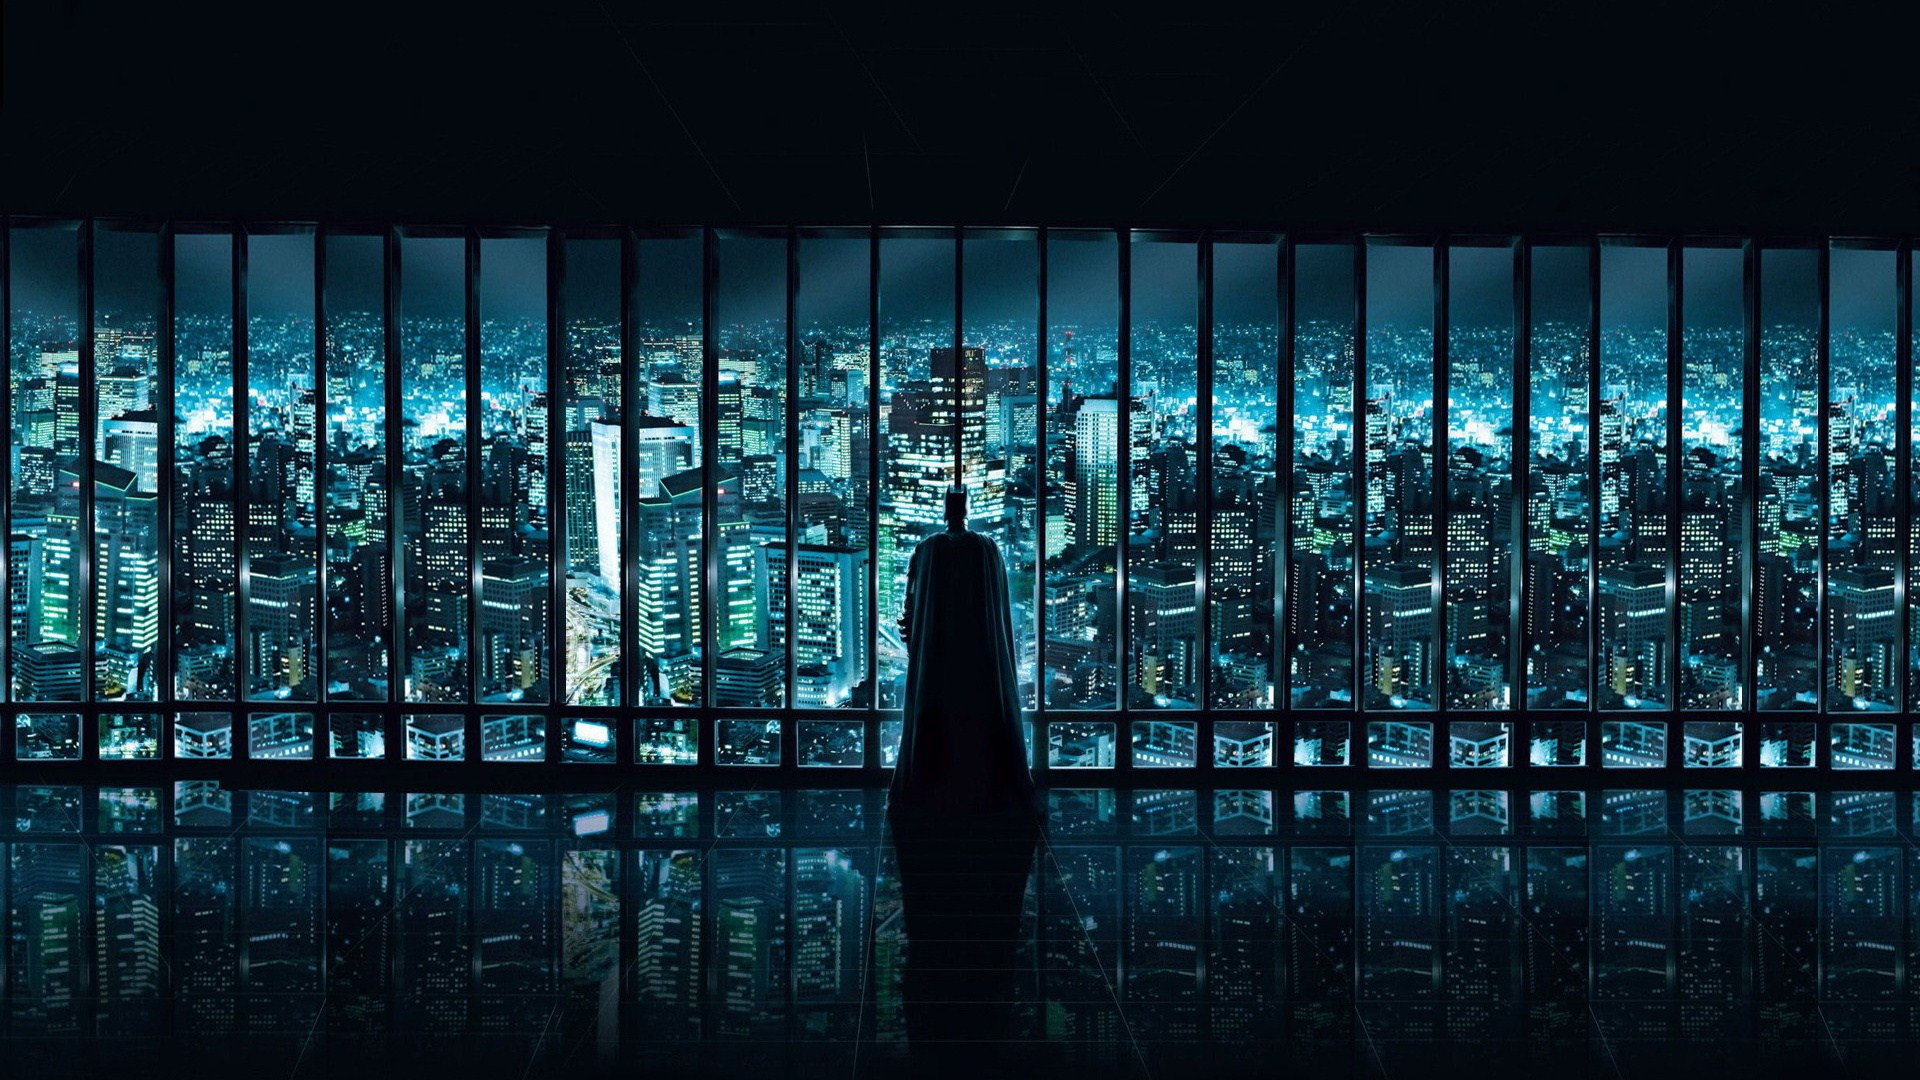 Batman - The Dark Knight Returns - Top 10 HD Batman Movie Desktop Wallpapers